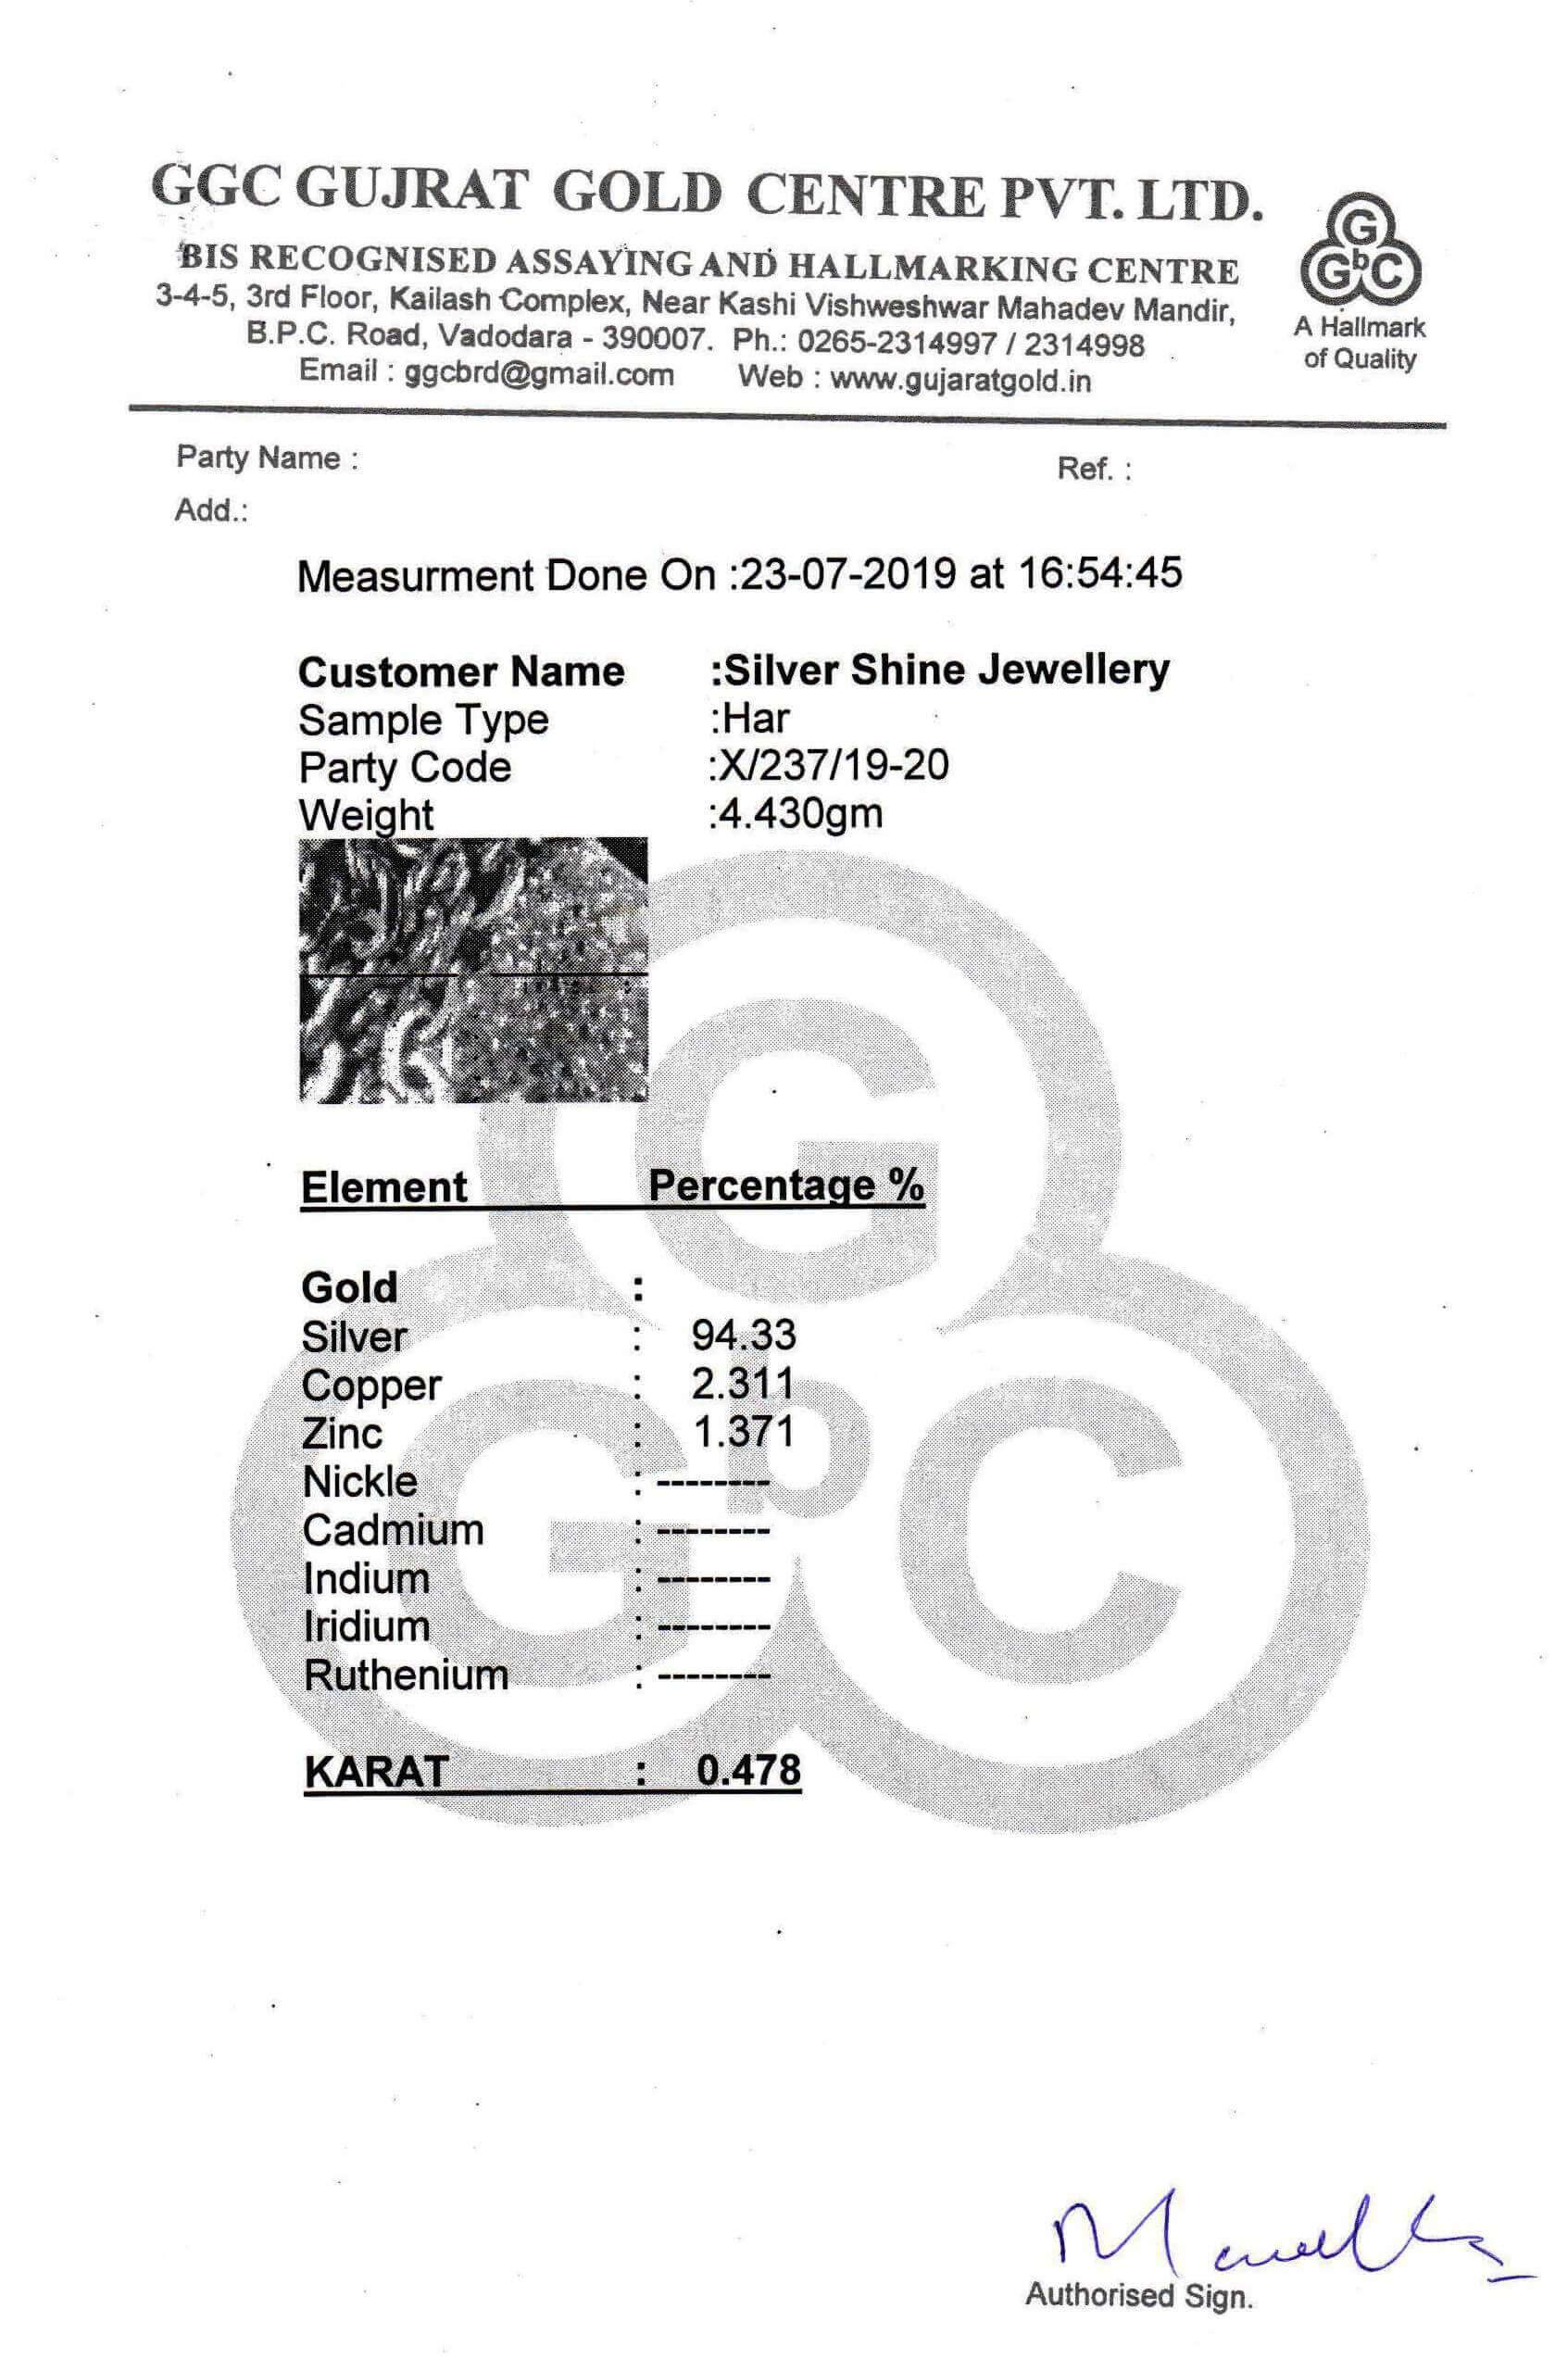 Purity_Certificate_Silver_Shine_5